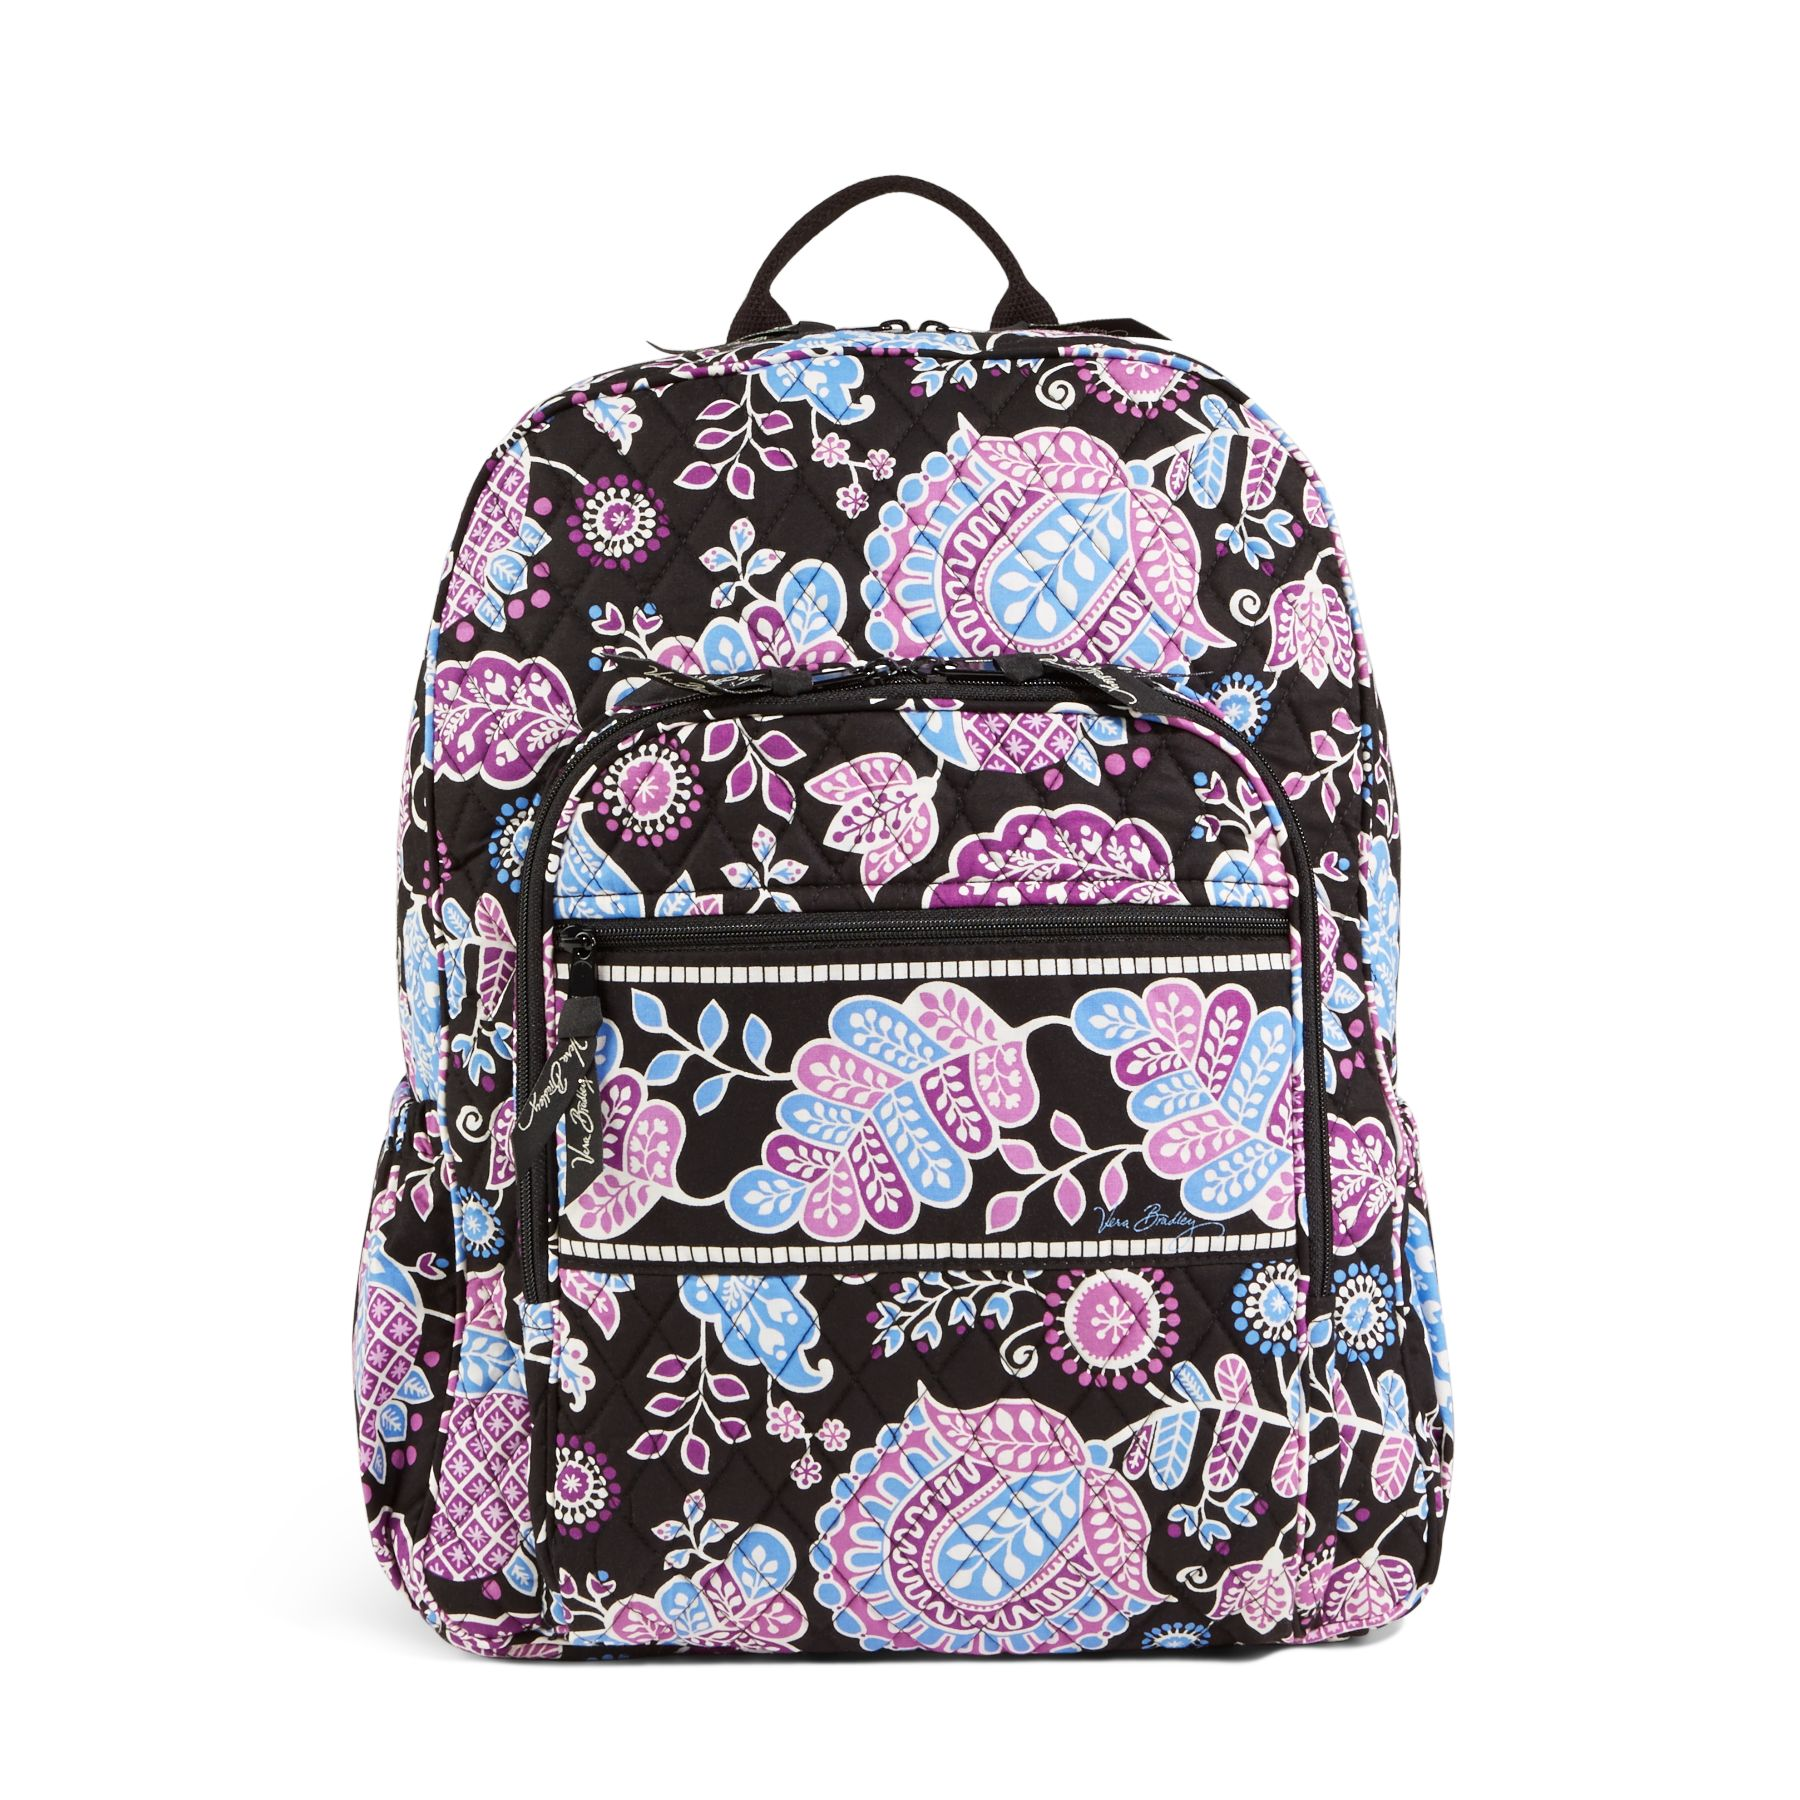 Vera Bradley Campus Backpack in Alpine Floral